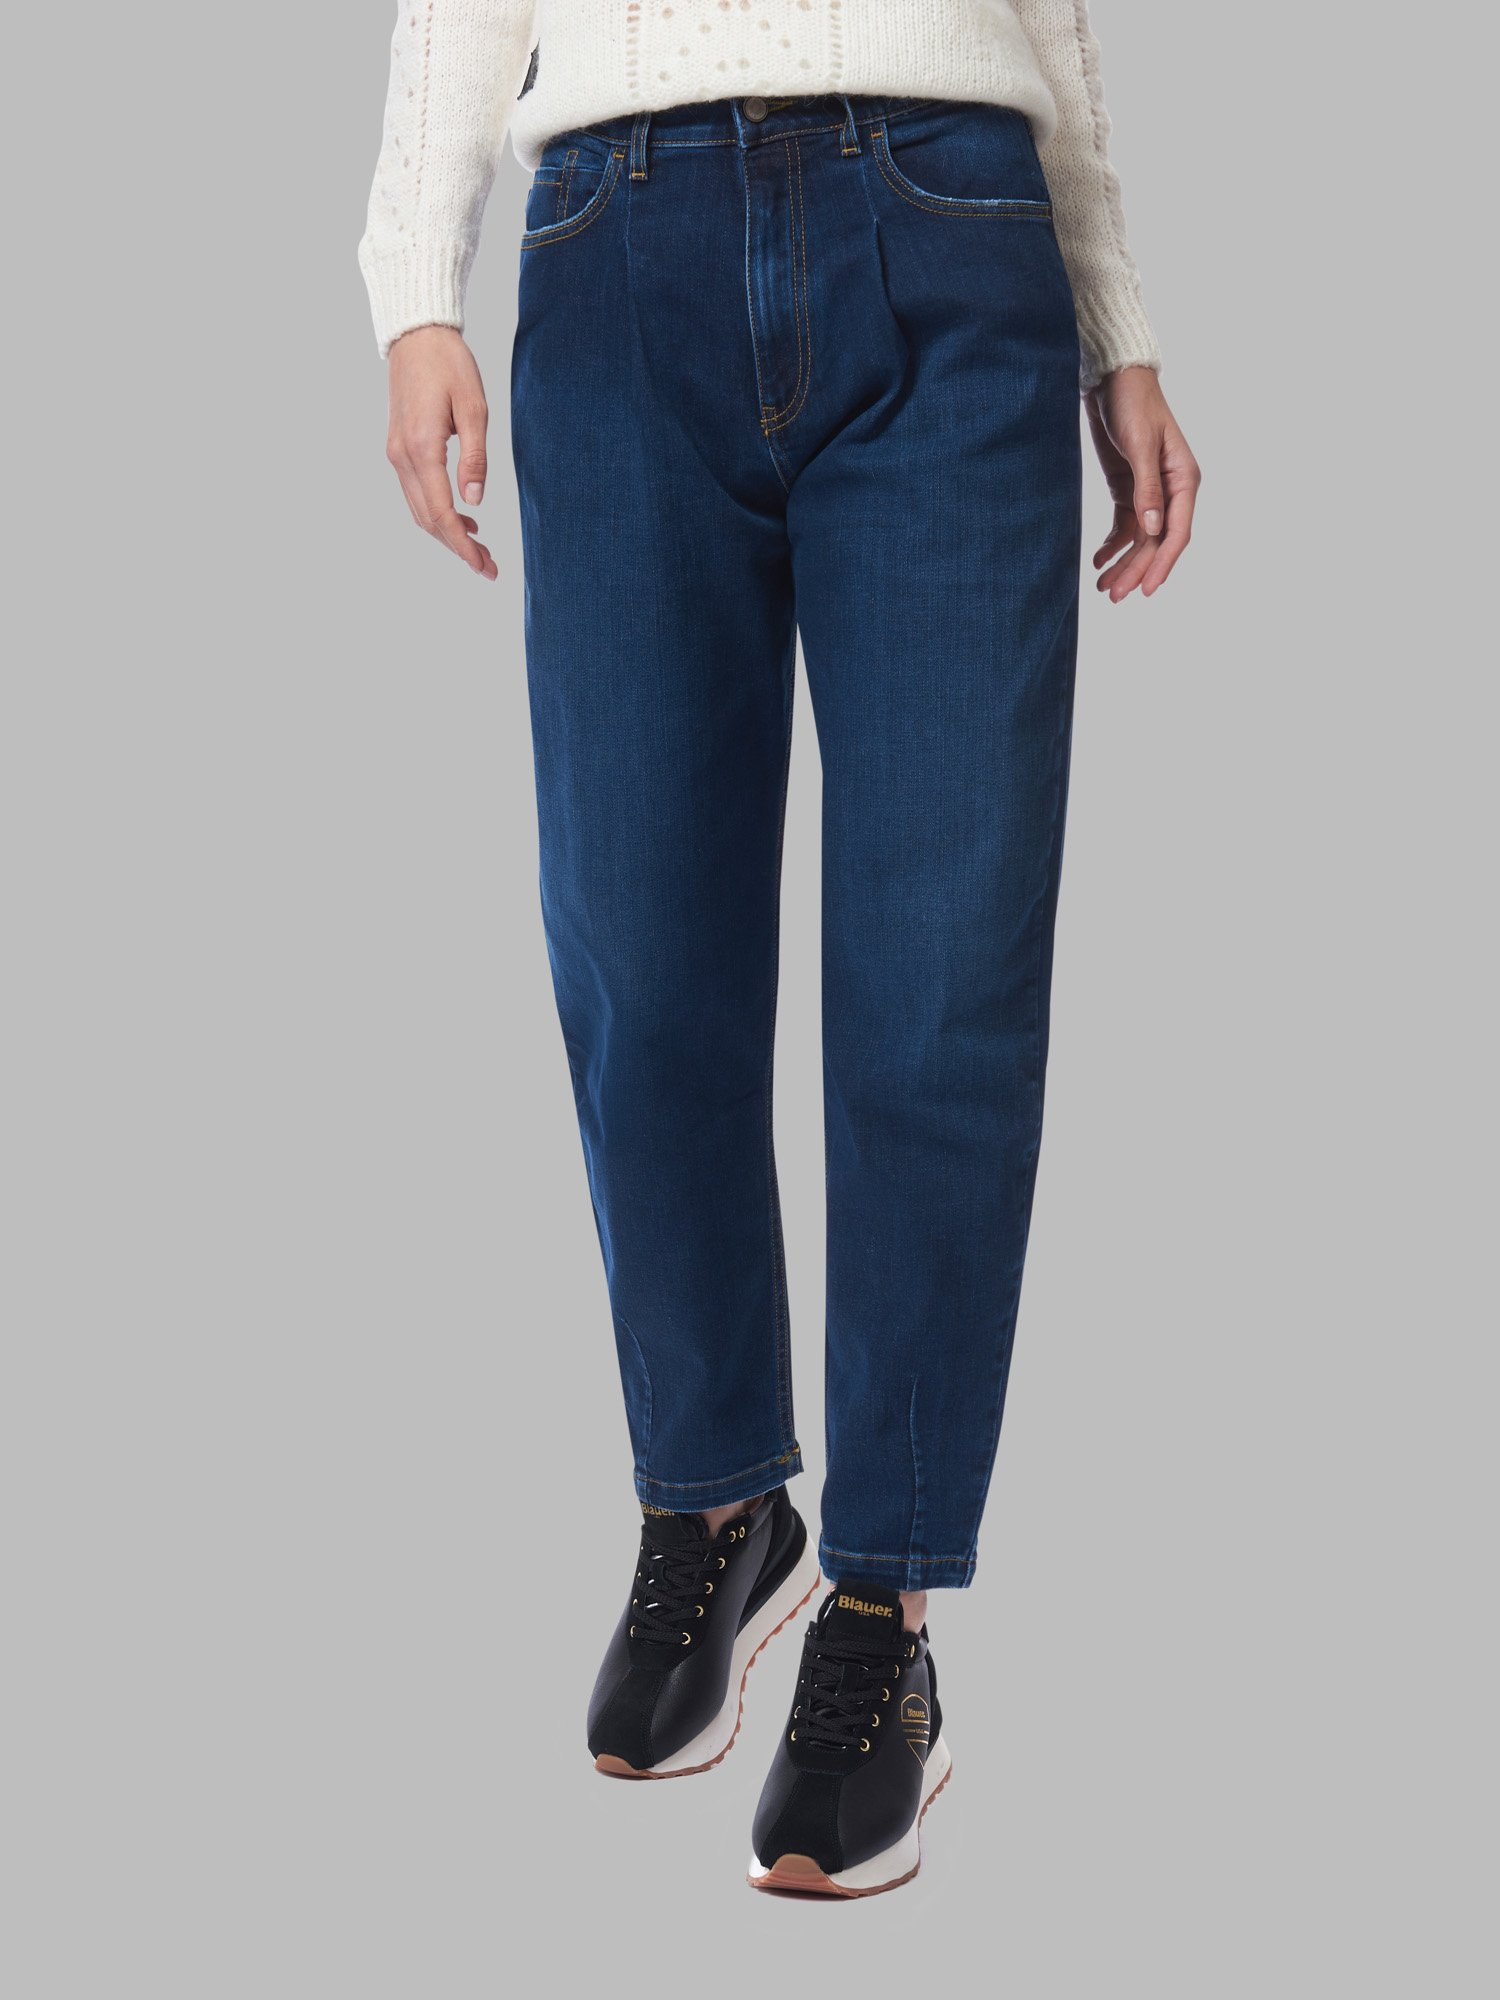 JEANS CARROT FIT - Blauer